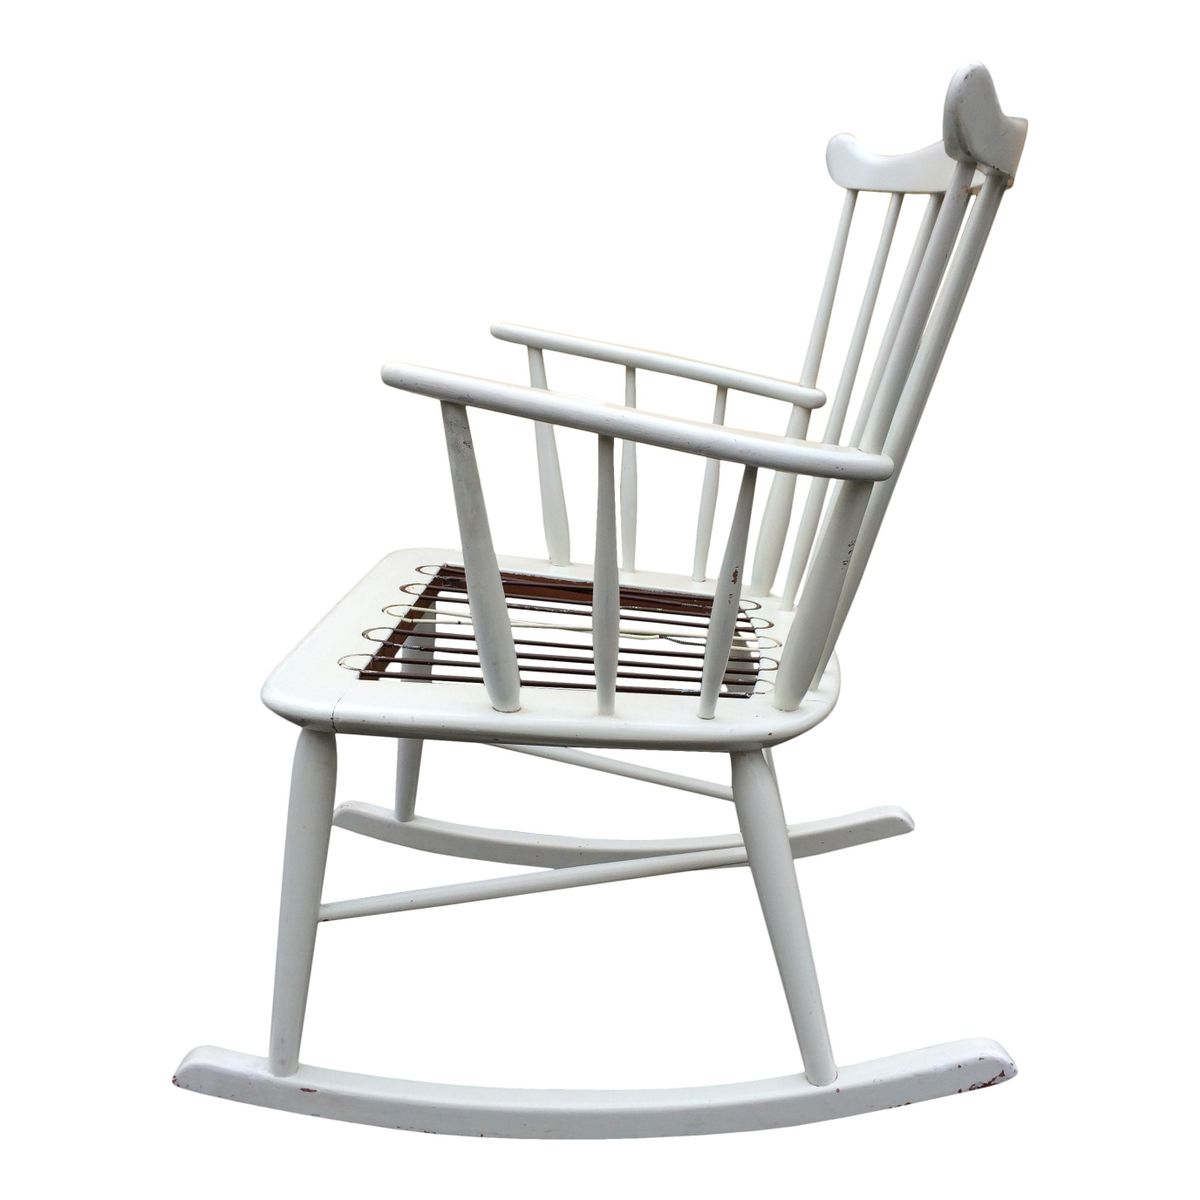 Wonderful image of FDB Rocking Chair by Børge Mogensen for FDB Møbler Denmark for sale  with #413530 color and 1200x1200 pixels